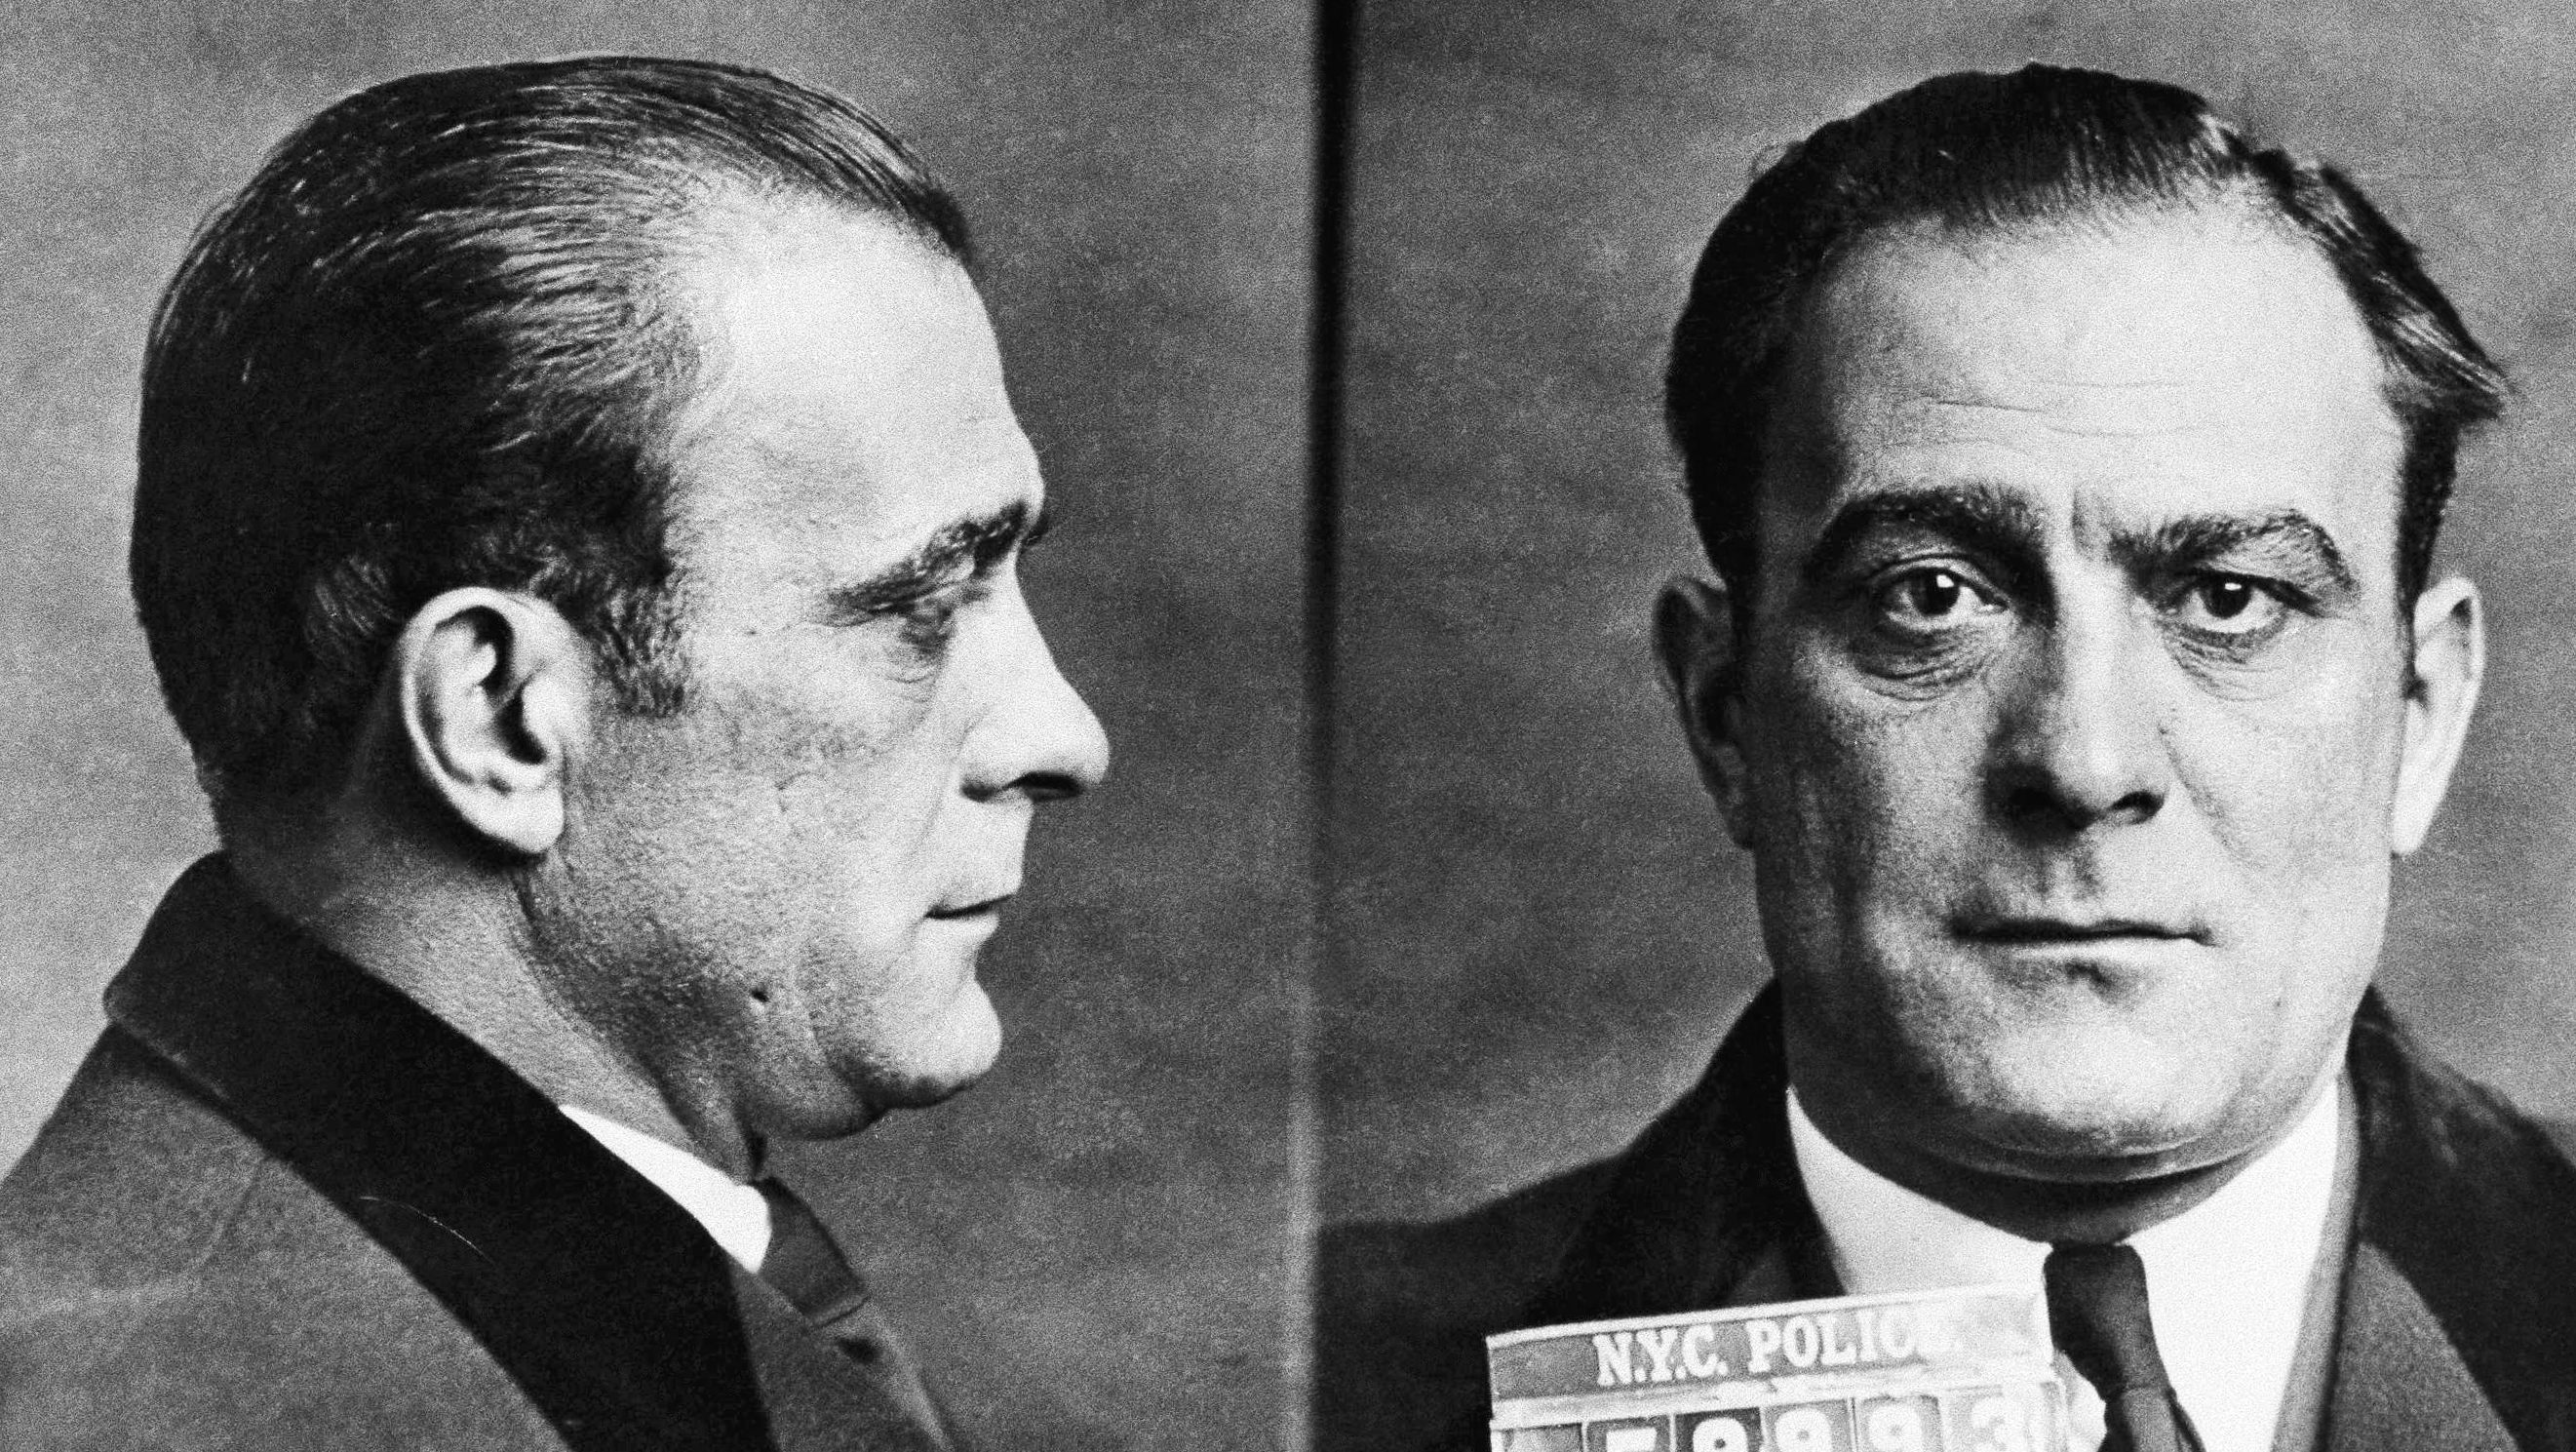 Reputed mobster Vito Genovese is shown in a police mugshot, 1946. (AP Photo)